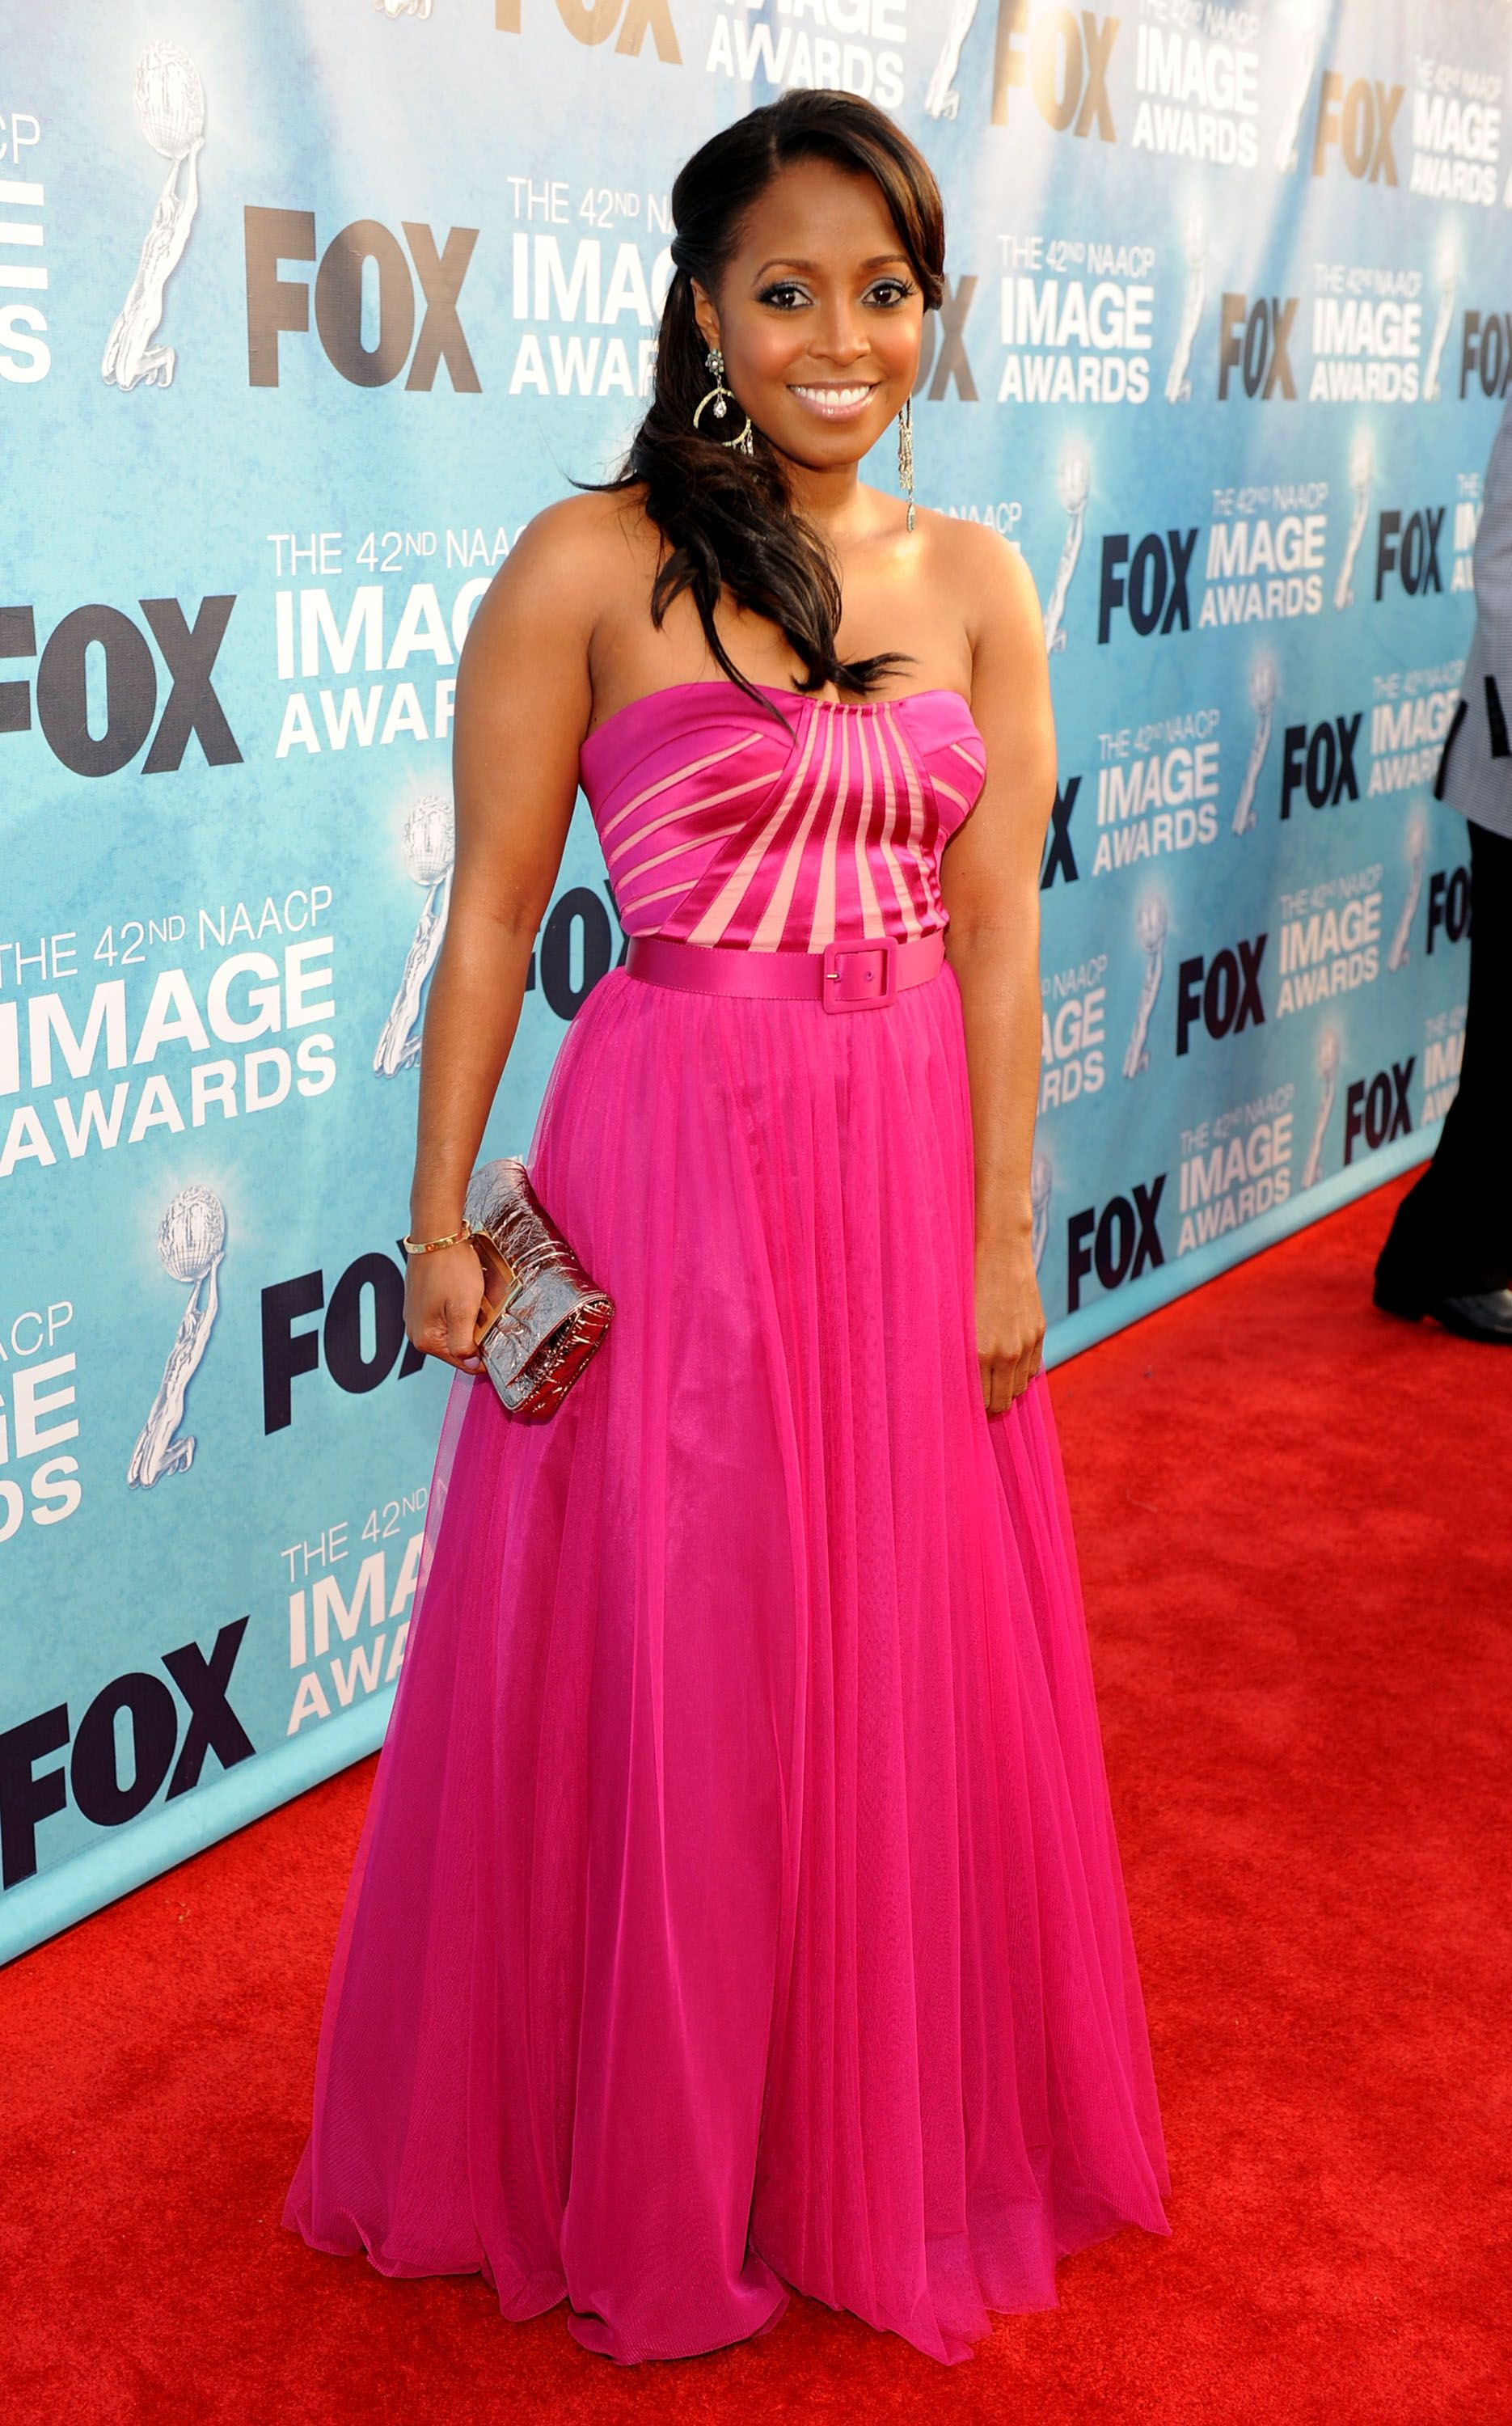 Keshia Knight Pulliam at the NAACP Image Awards on March 4, 2011 in Los Angeles, California. | Photo: Getty Images